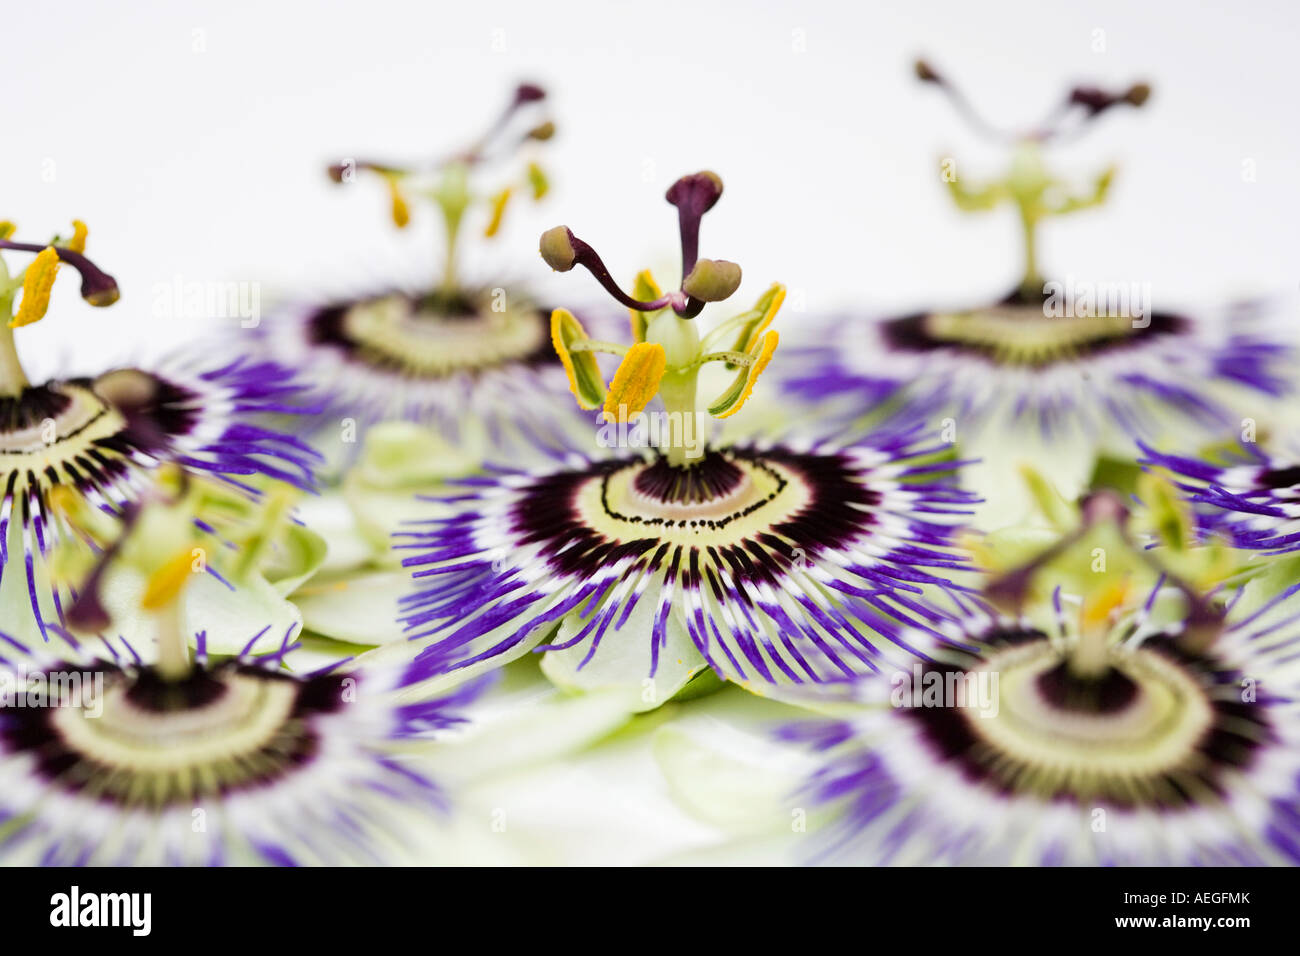 A group of passion flower heads on white background stock photo a group of passion flower heads on white background dhlflorist Images